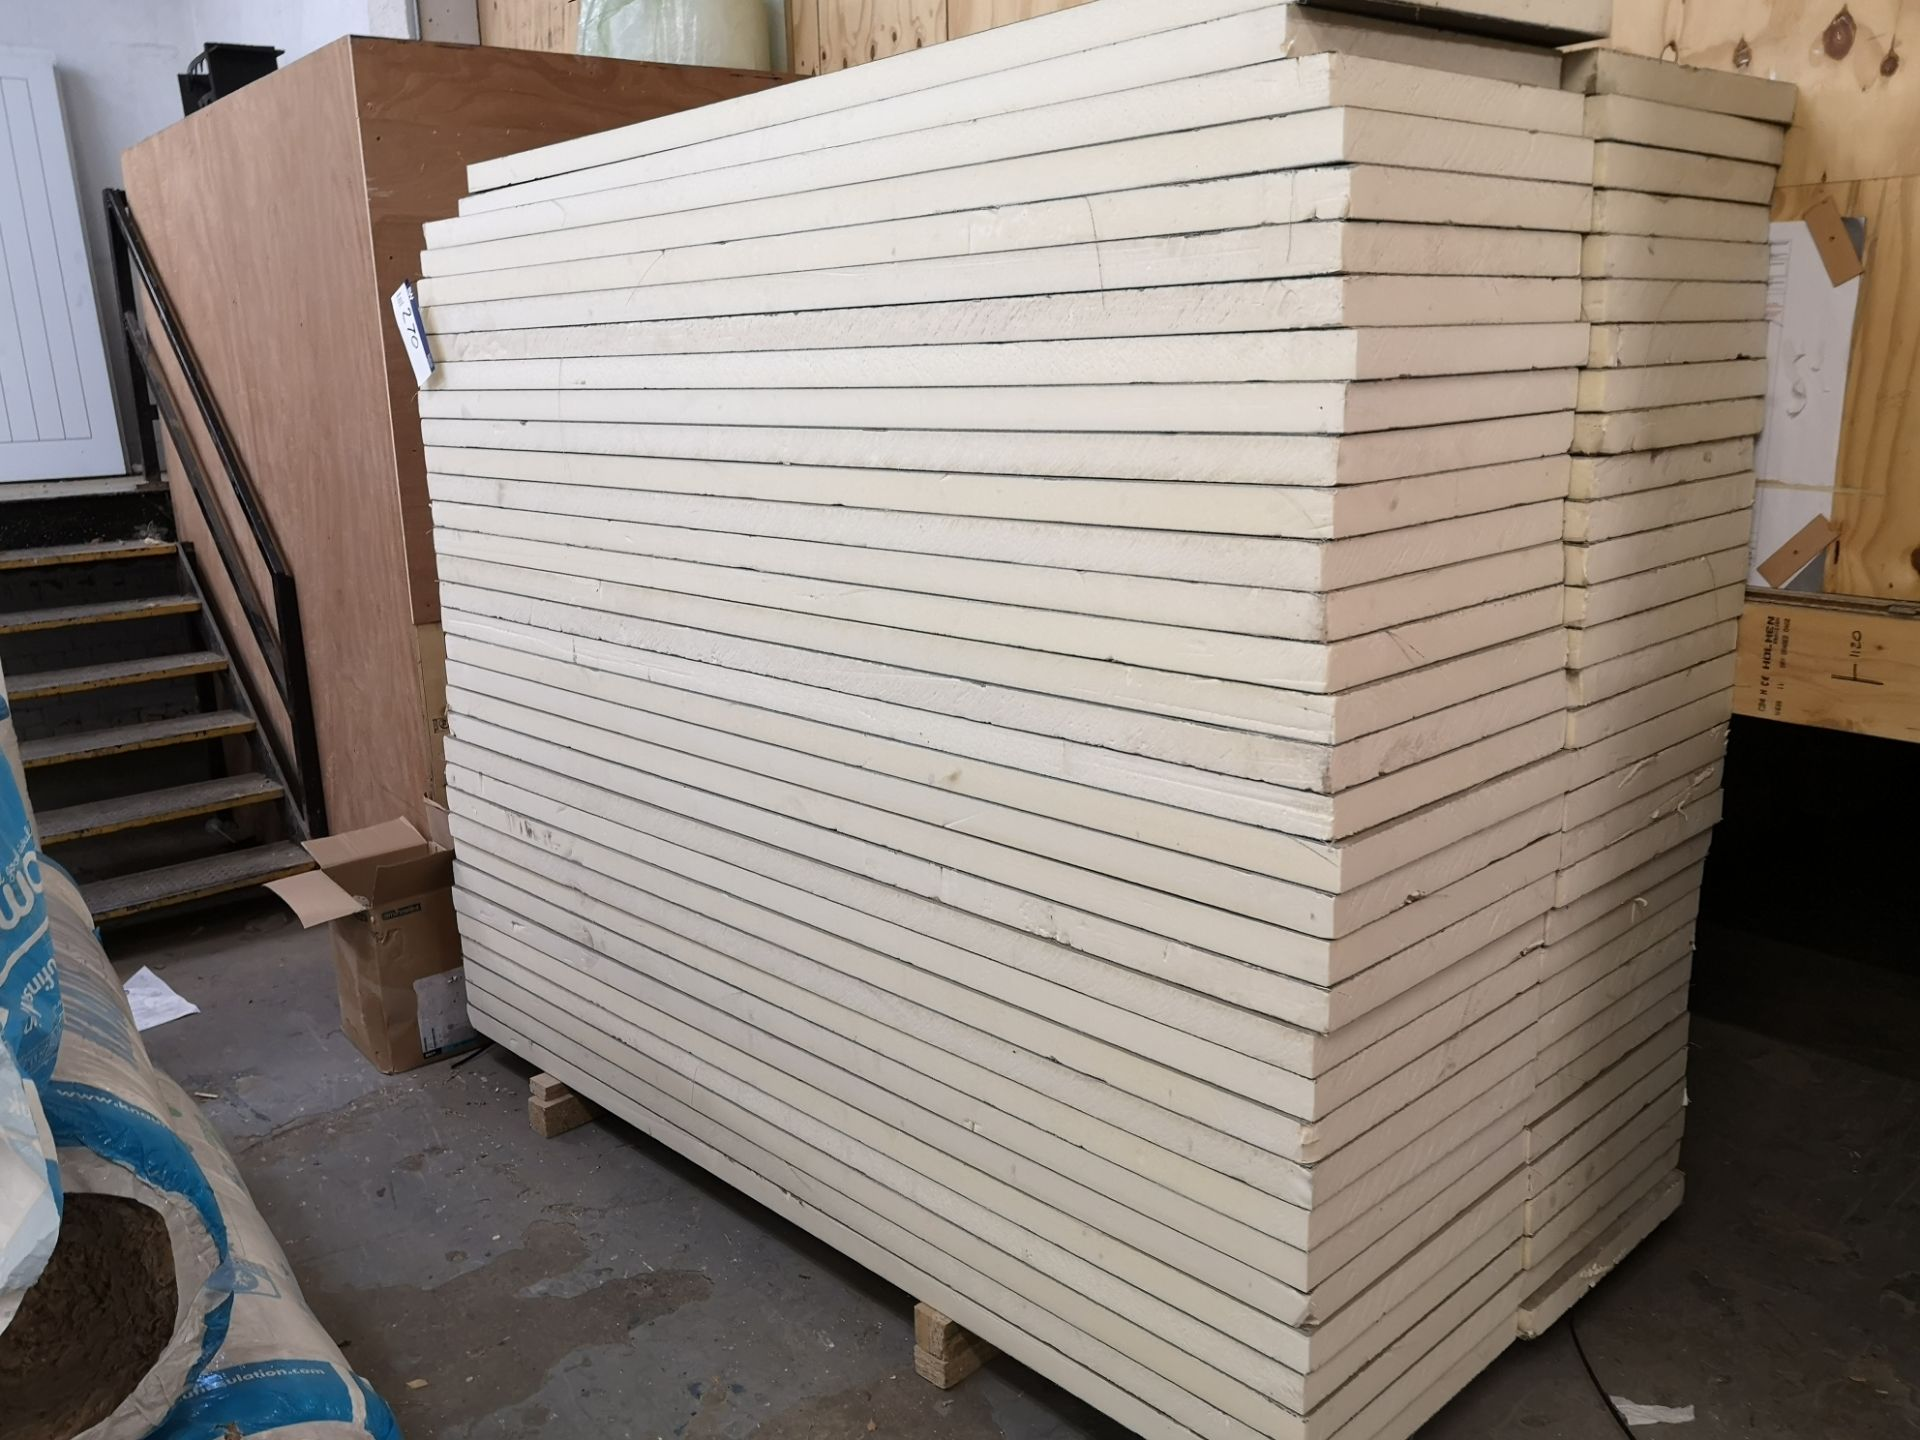 Lot 270 - Quantity of Thermal Construction Boards, approx. 2